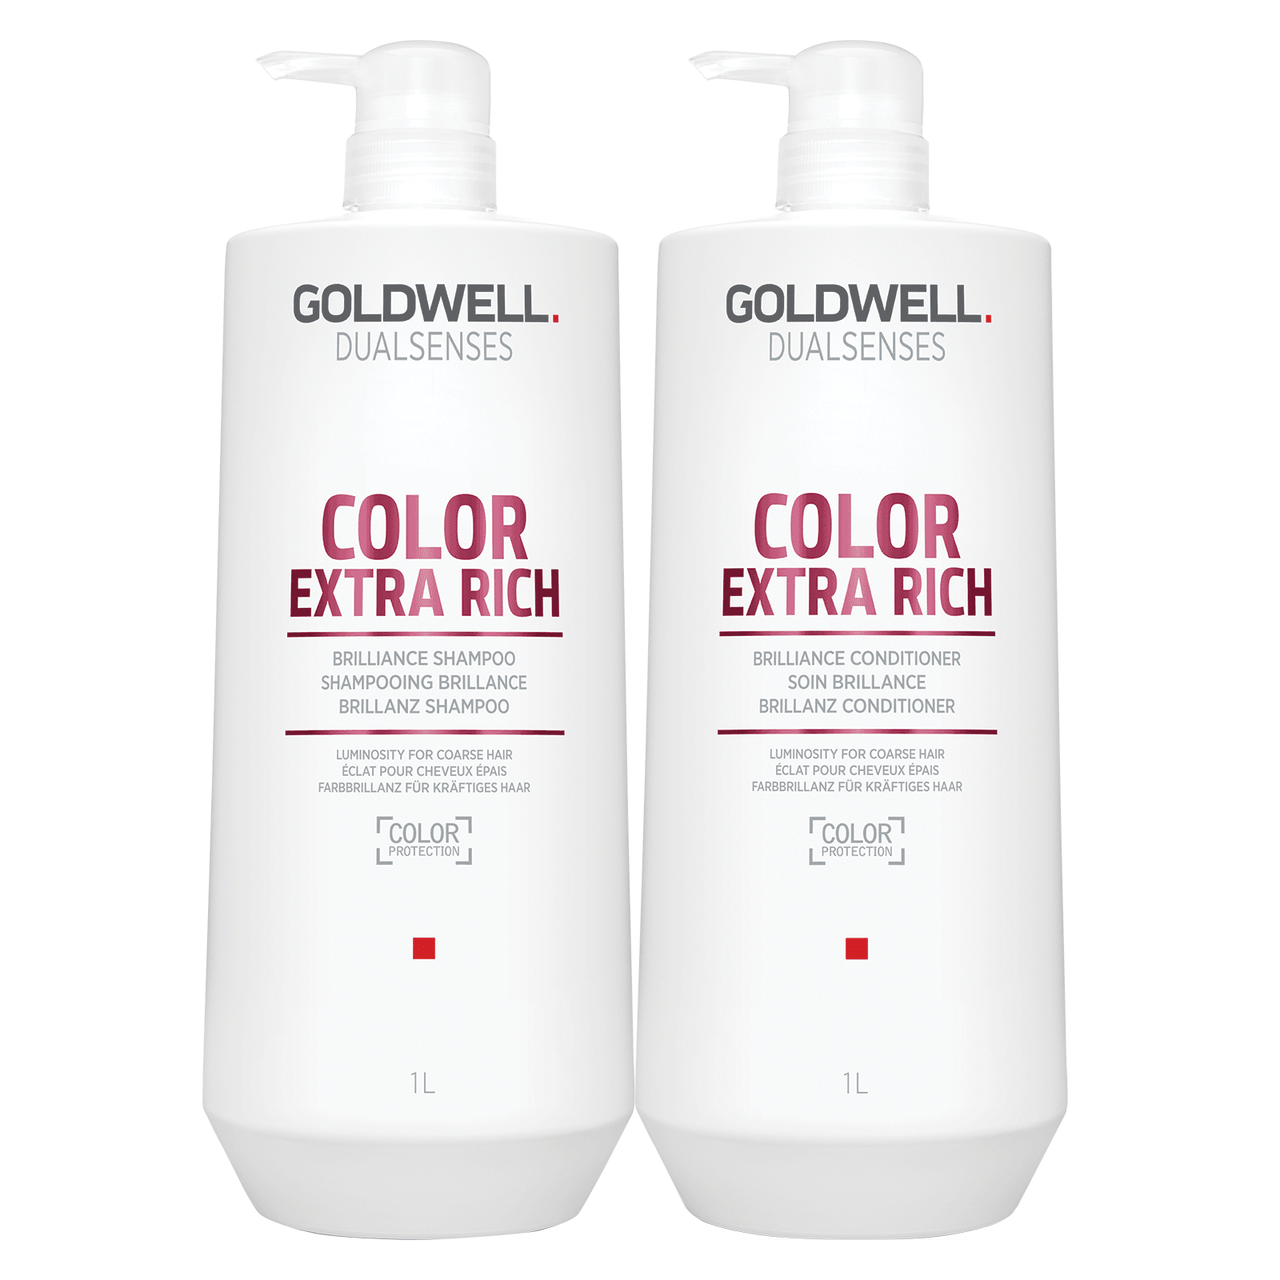 Goldwell Dual Senses Color Extra Rich Liter Duo